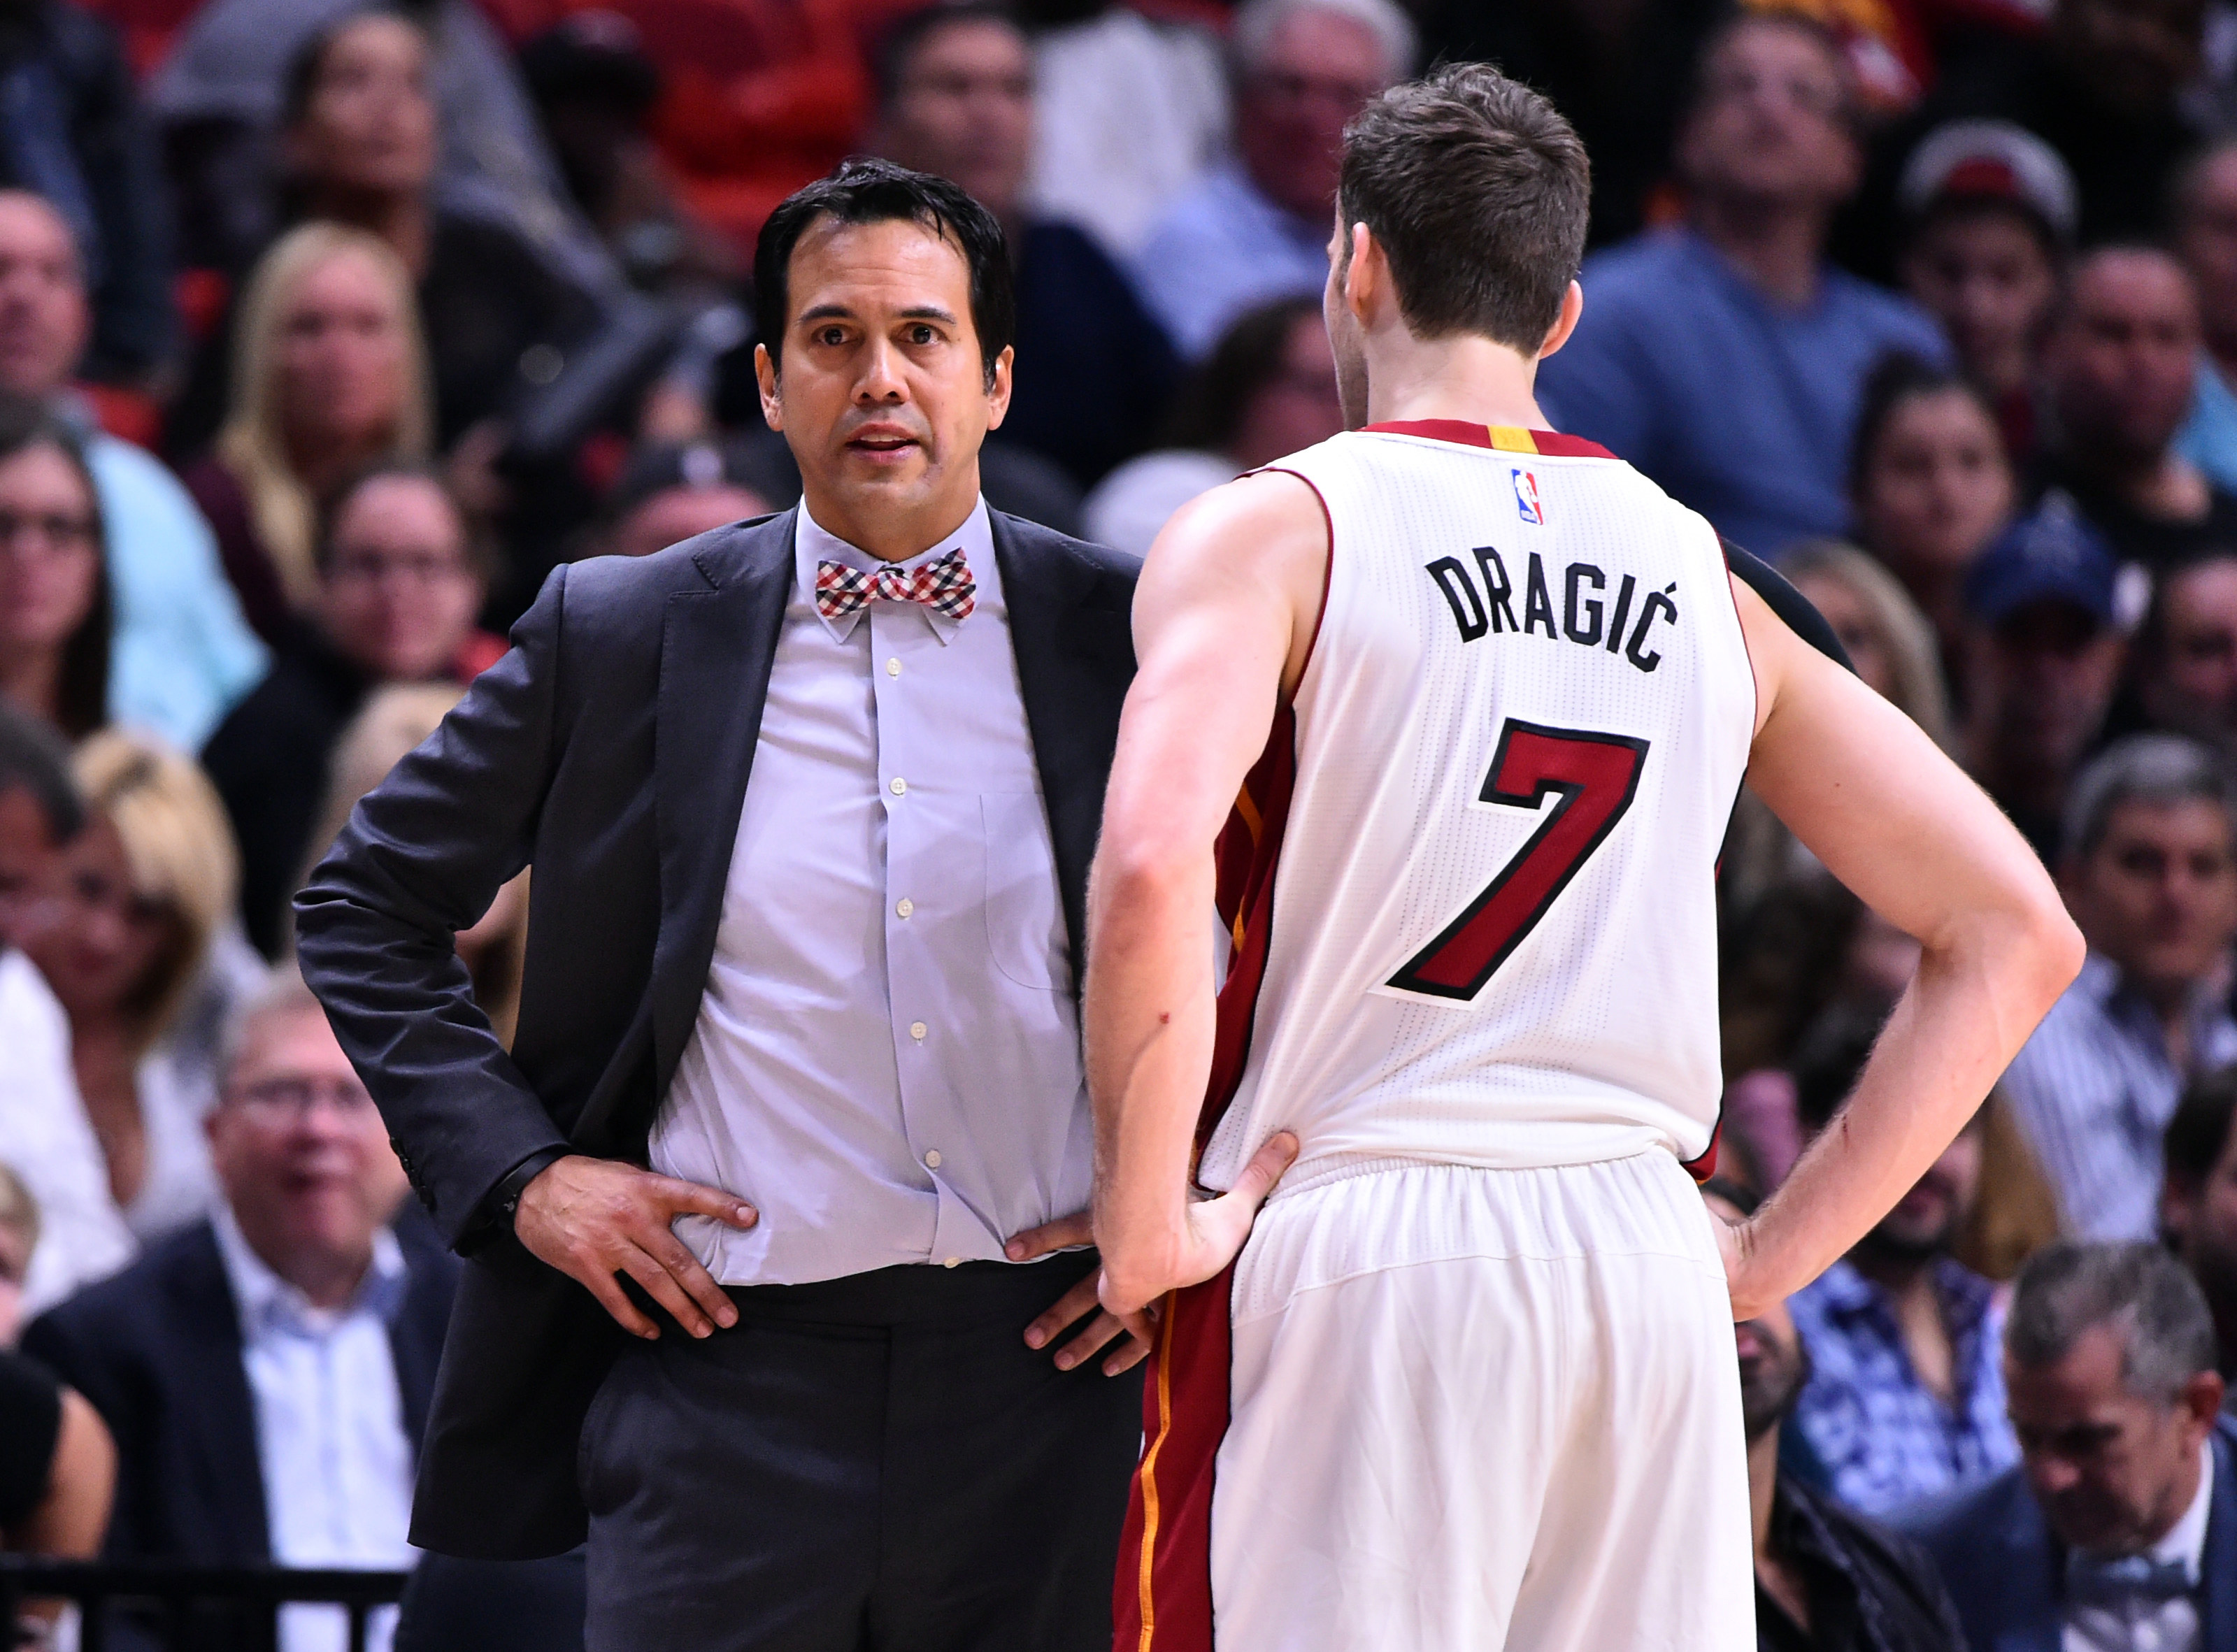 Jan 28, 2017; Miami, FL, USA; Miami Heat head coach Erik Spoelstra talks with guard Goran Dragic (7) during the second half against the Detroit Pistons at American Airlines Arena. The Heat won 116-103. Mandatory Credit: Steve Mitchell-USA TODAY Sports